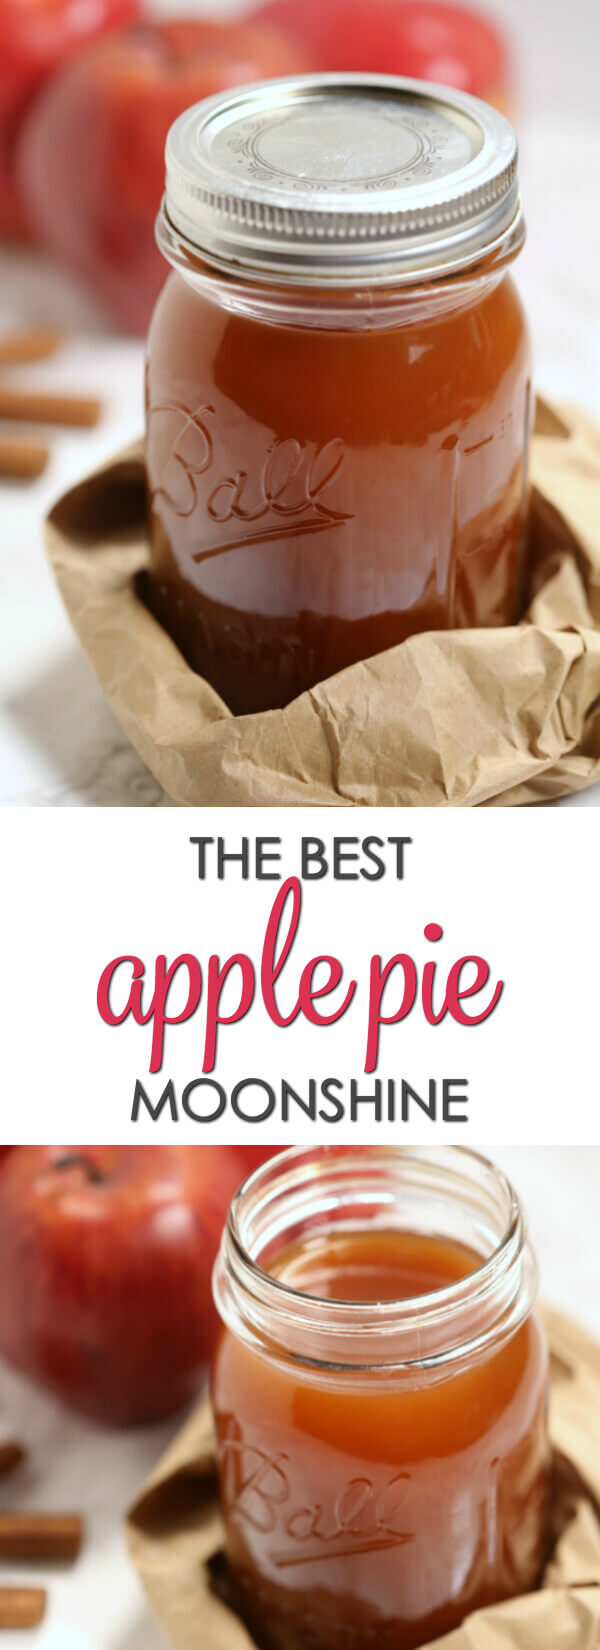 This is the bestApple Pie Moonshine recipe. Made with apple cider and Everclear grain alcohol, it packs a punch but still it's smooth andbursting with apple cinnamon flavor.#itisakeeper #recipe #moonshine